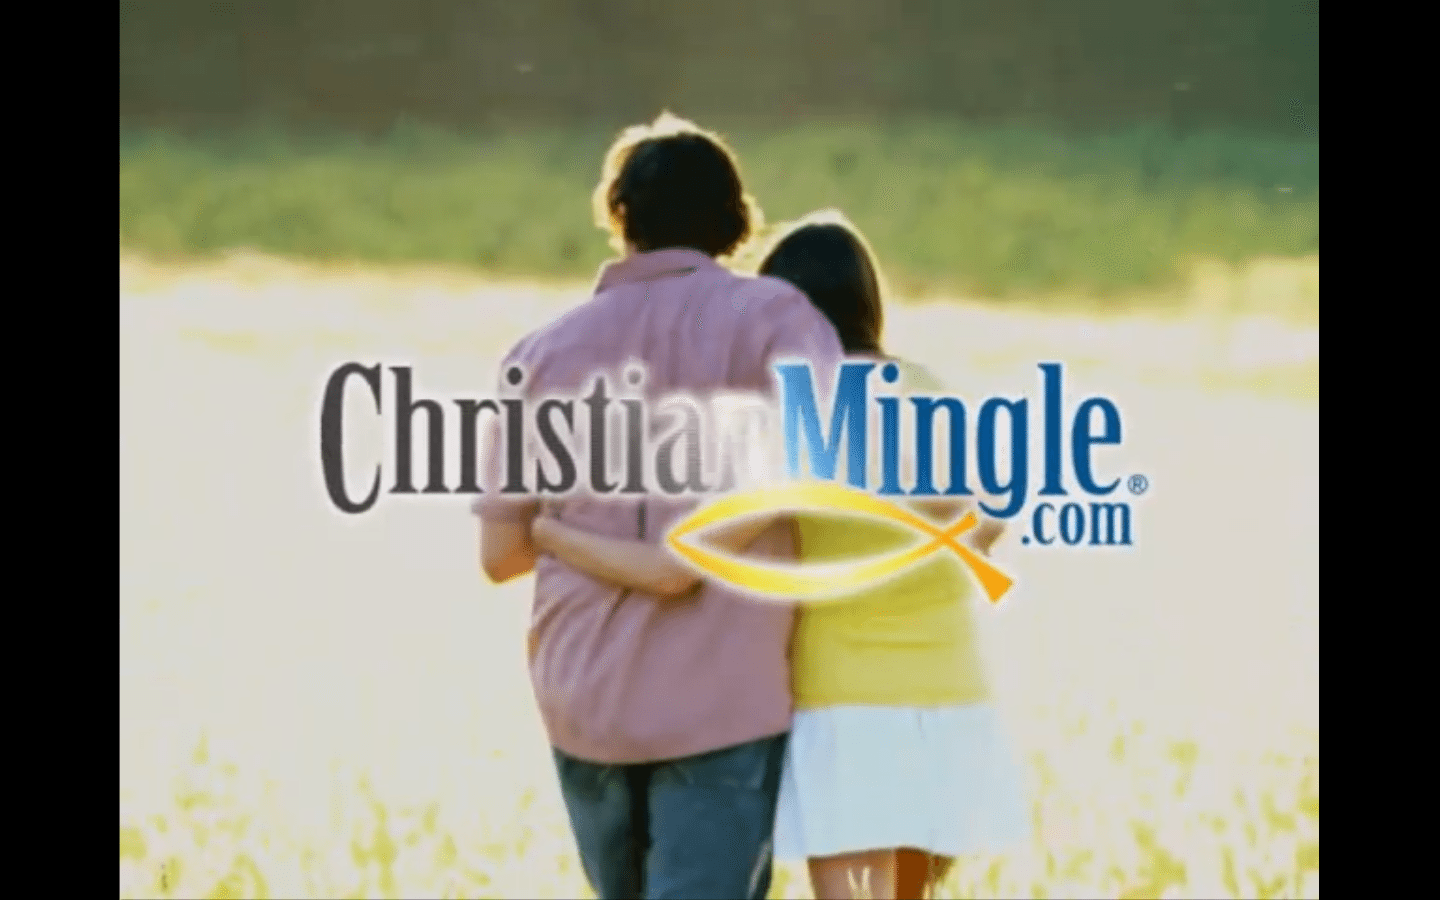 Christian stance on online dating